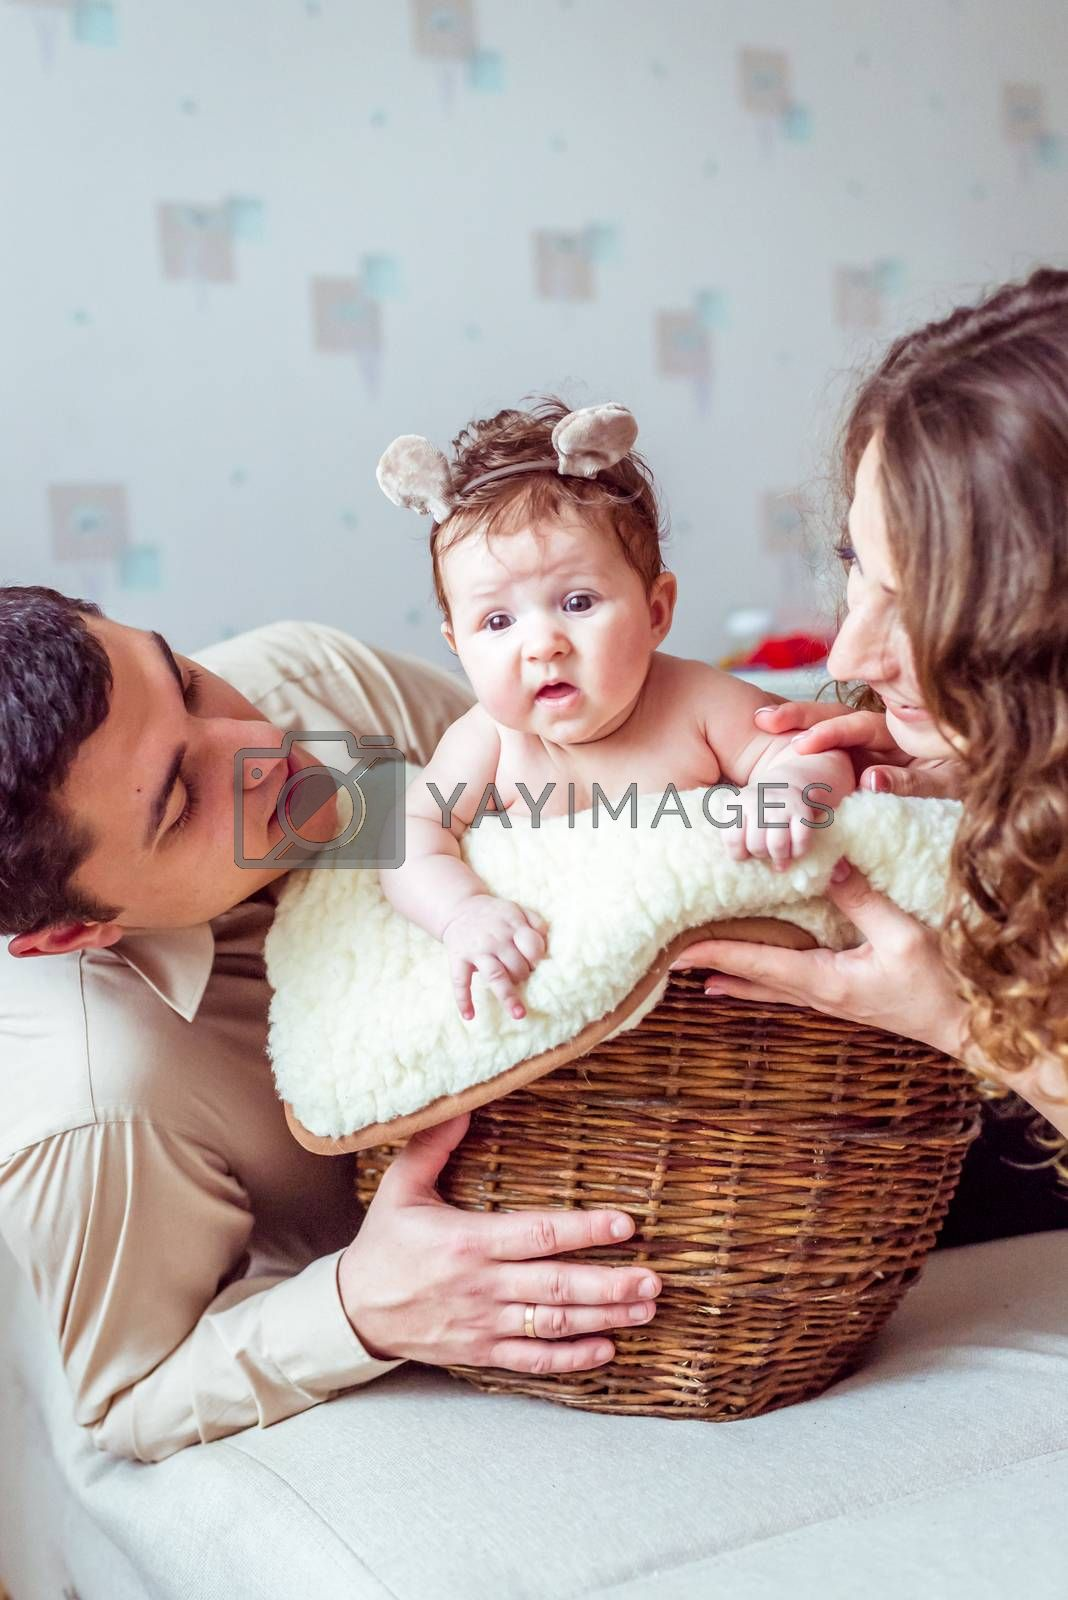 naked baby with her parents sitting in the wicker basket on the white soft blanket